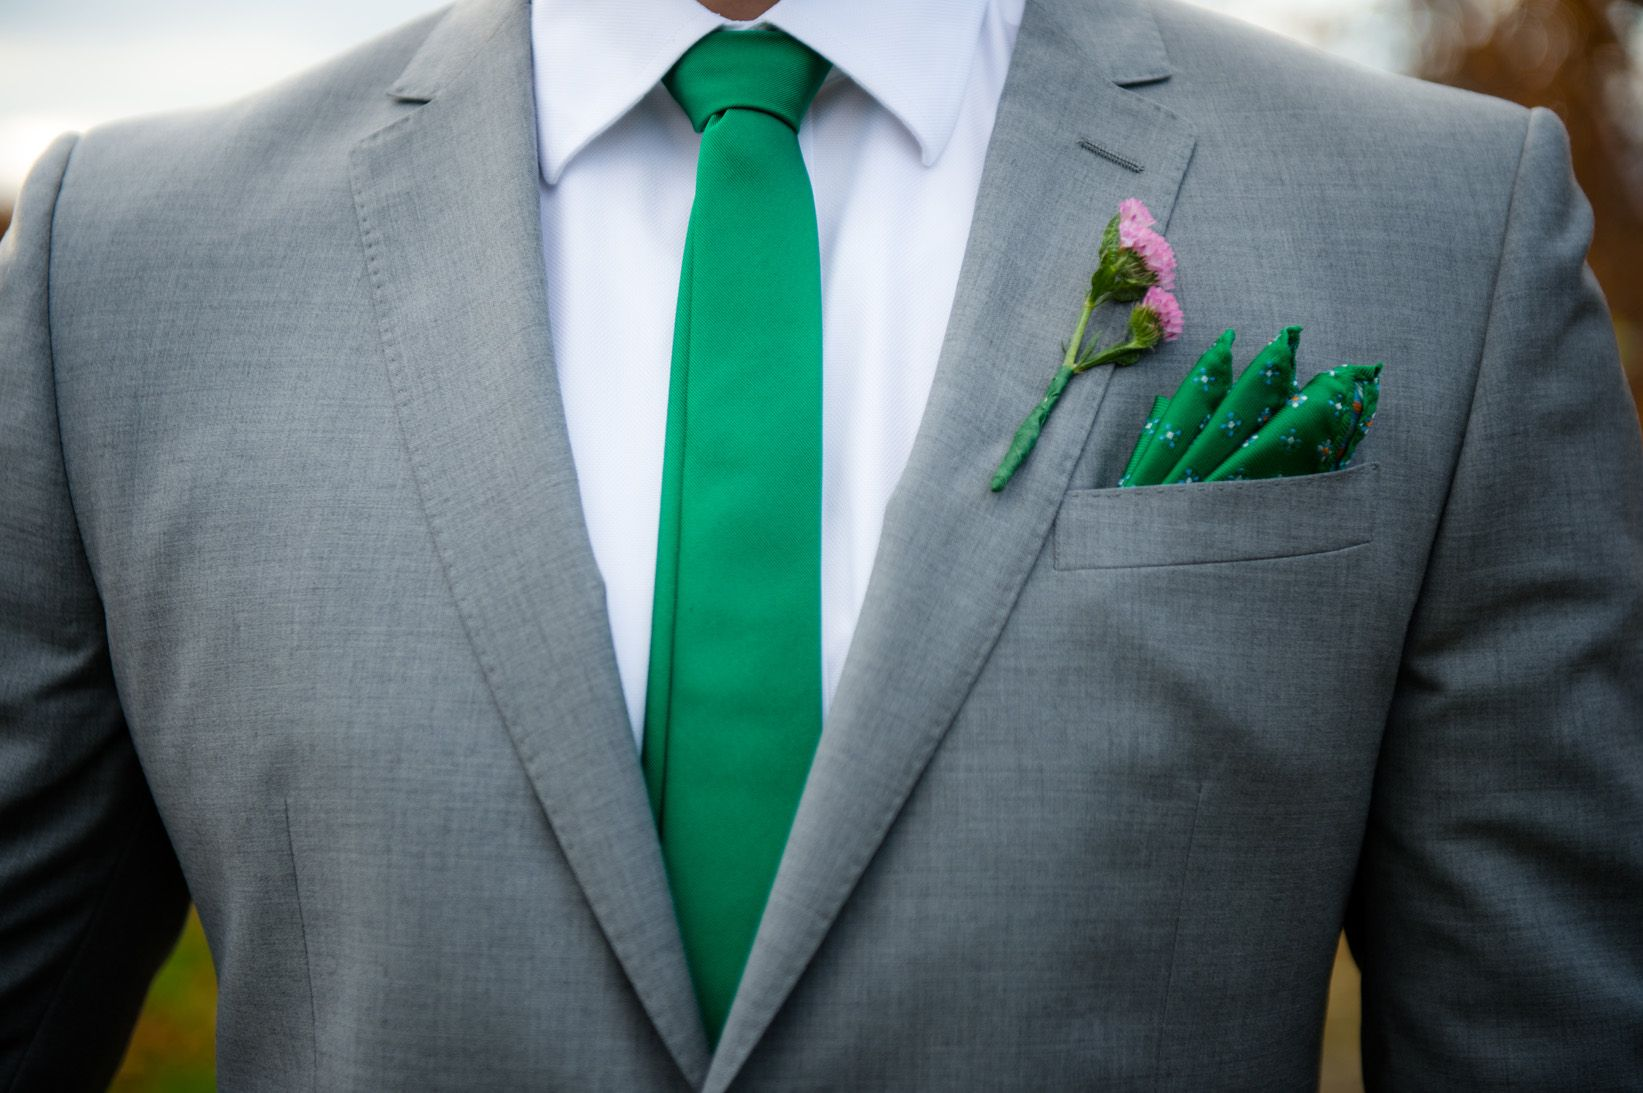 Gray Suit With Green Tie And Pocket Square